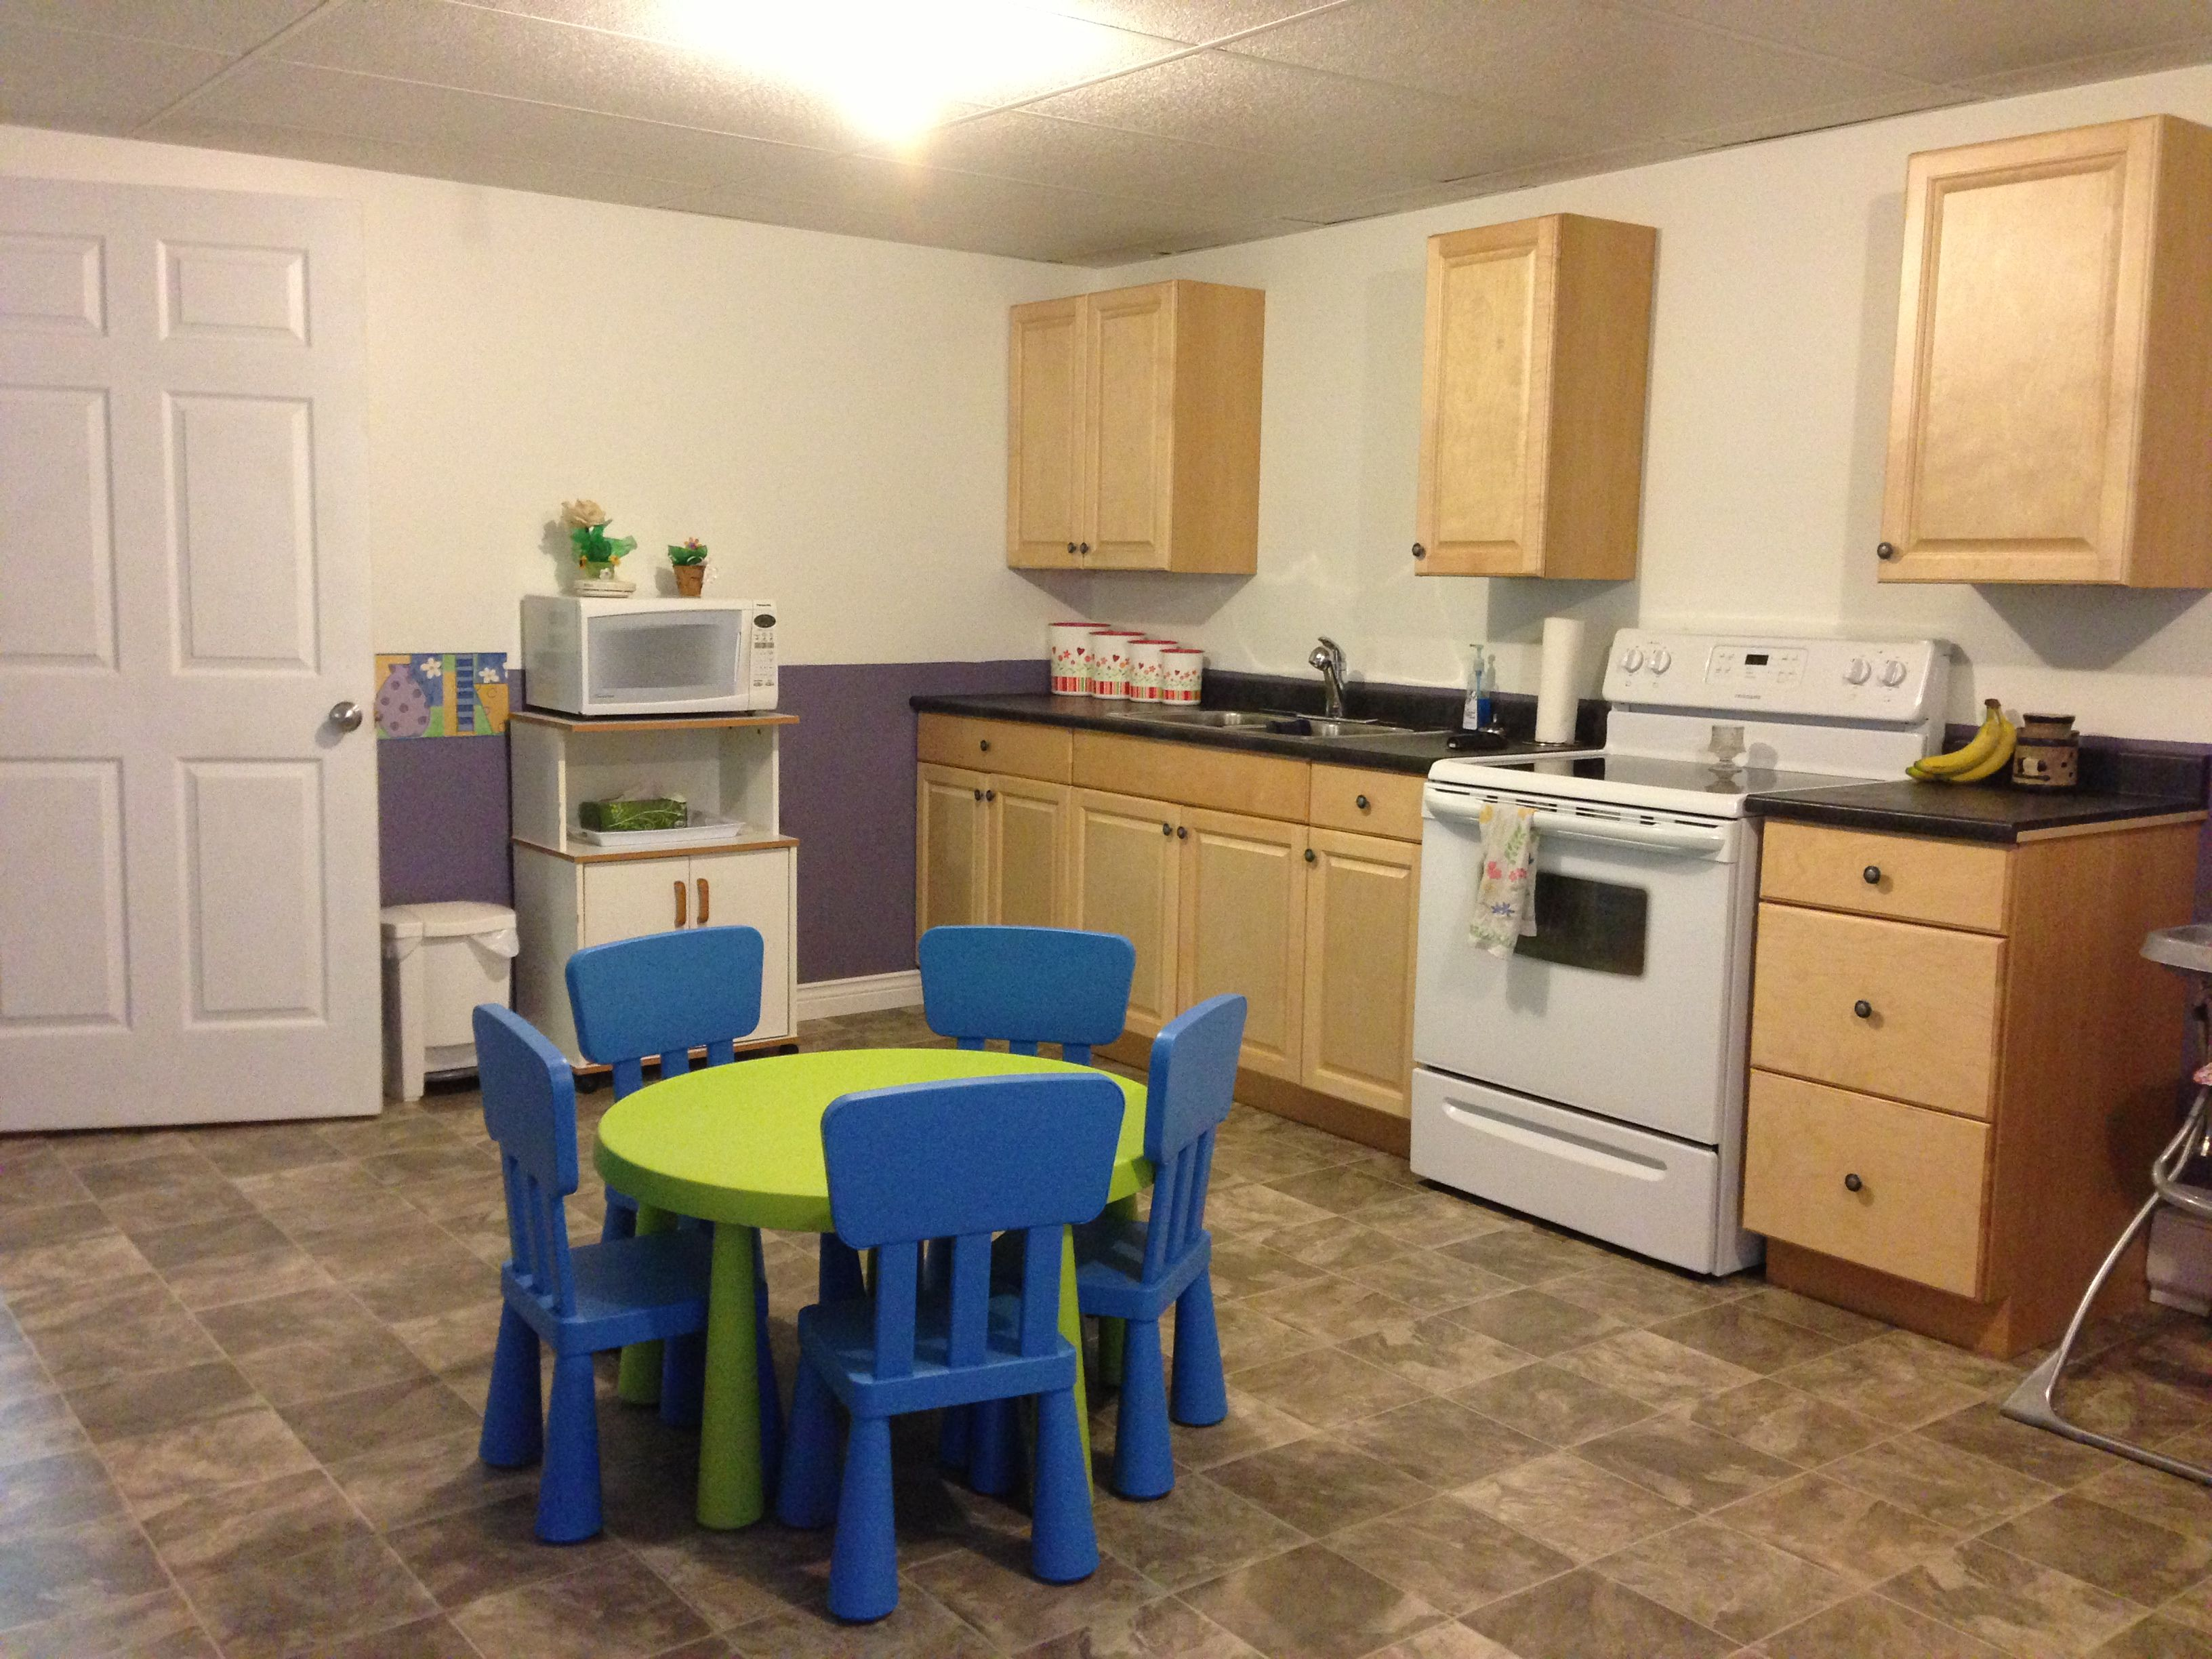 Preschool Kitchen Furniture Daycare Kitchen Lunch Time Home Daycare Pinterest Daycares